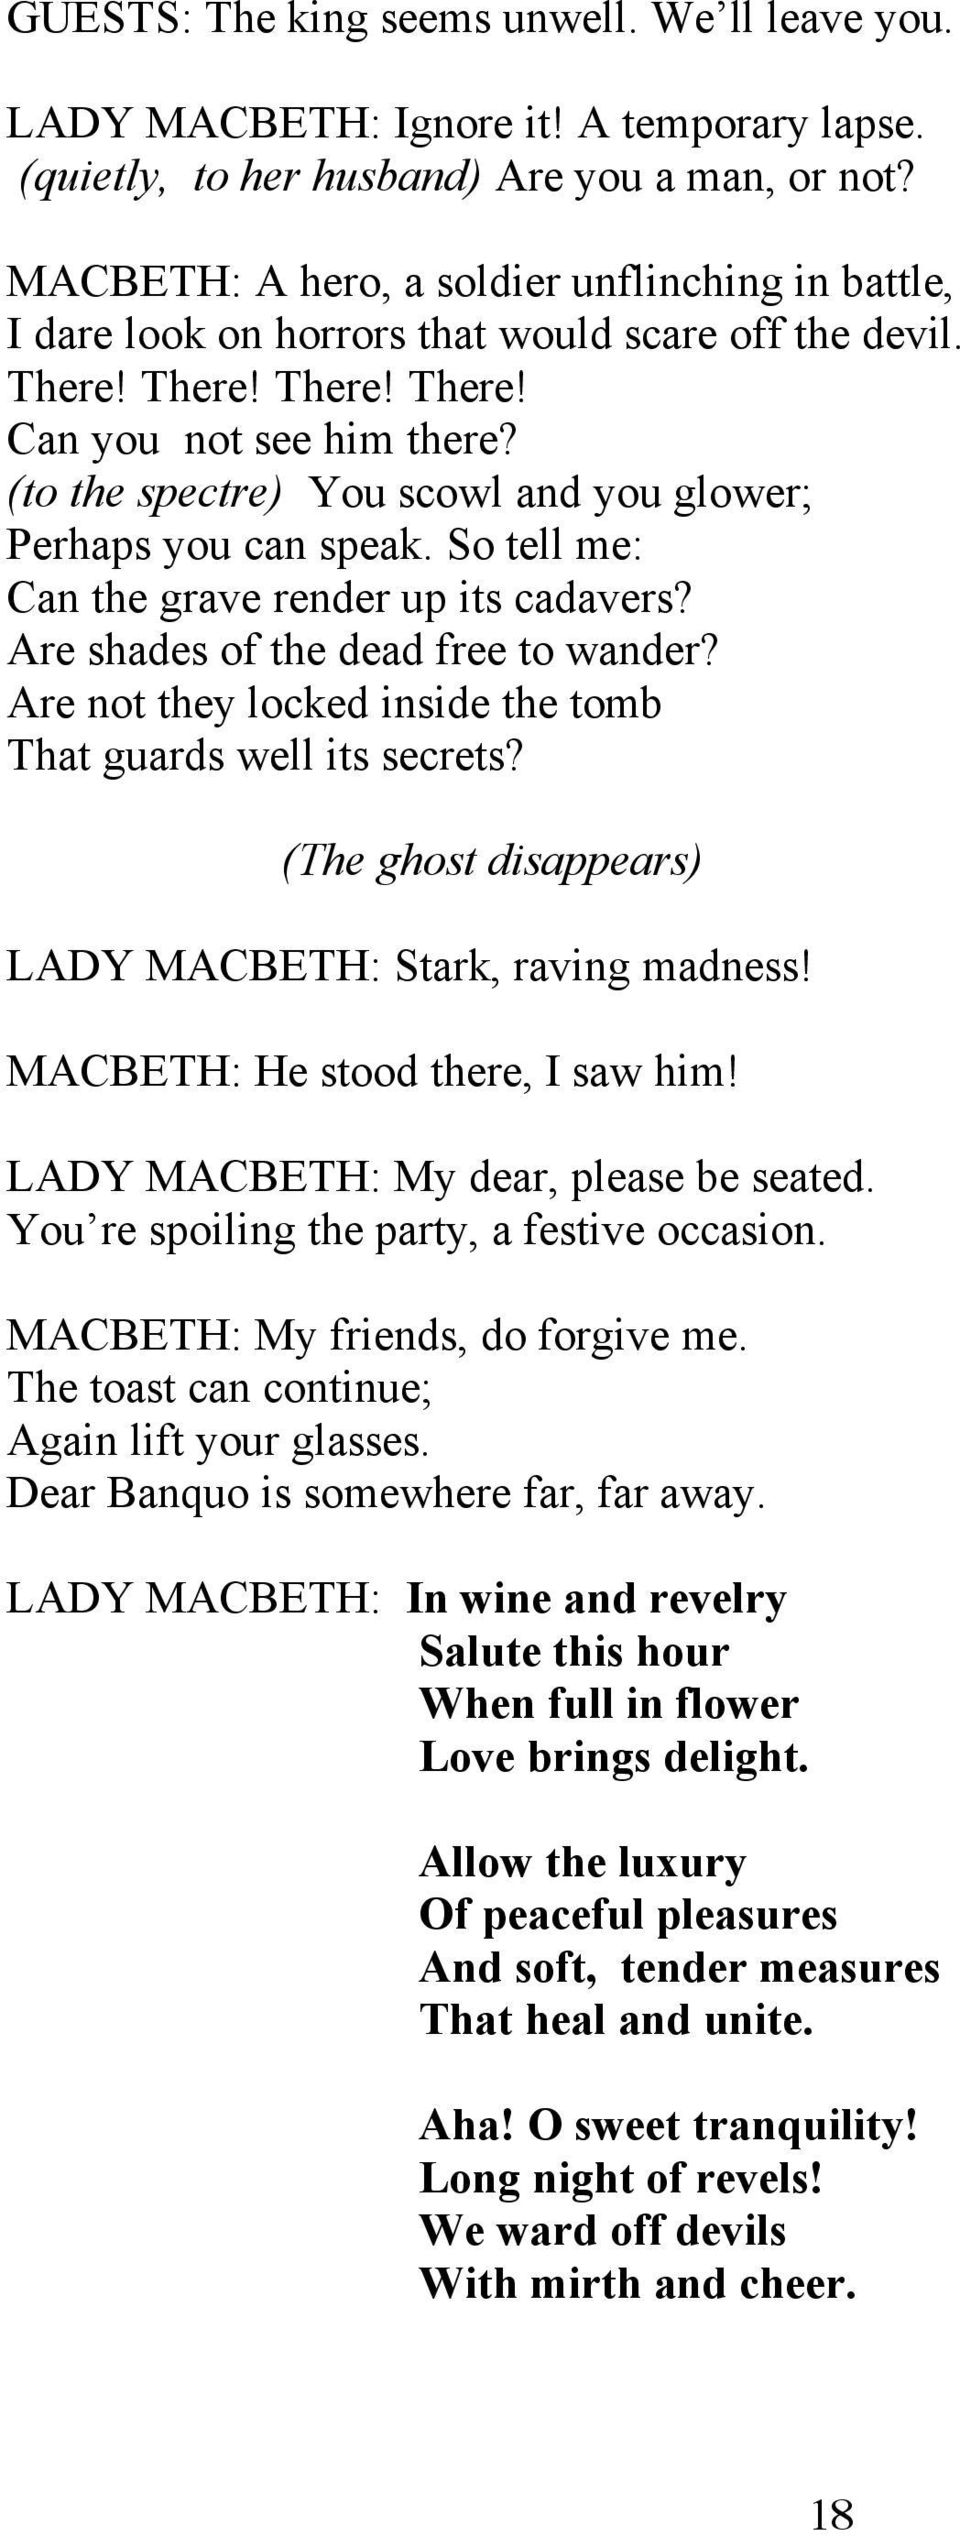 VERDI MACBETH  English Version by Donald Pippin (with considerable